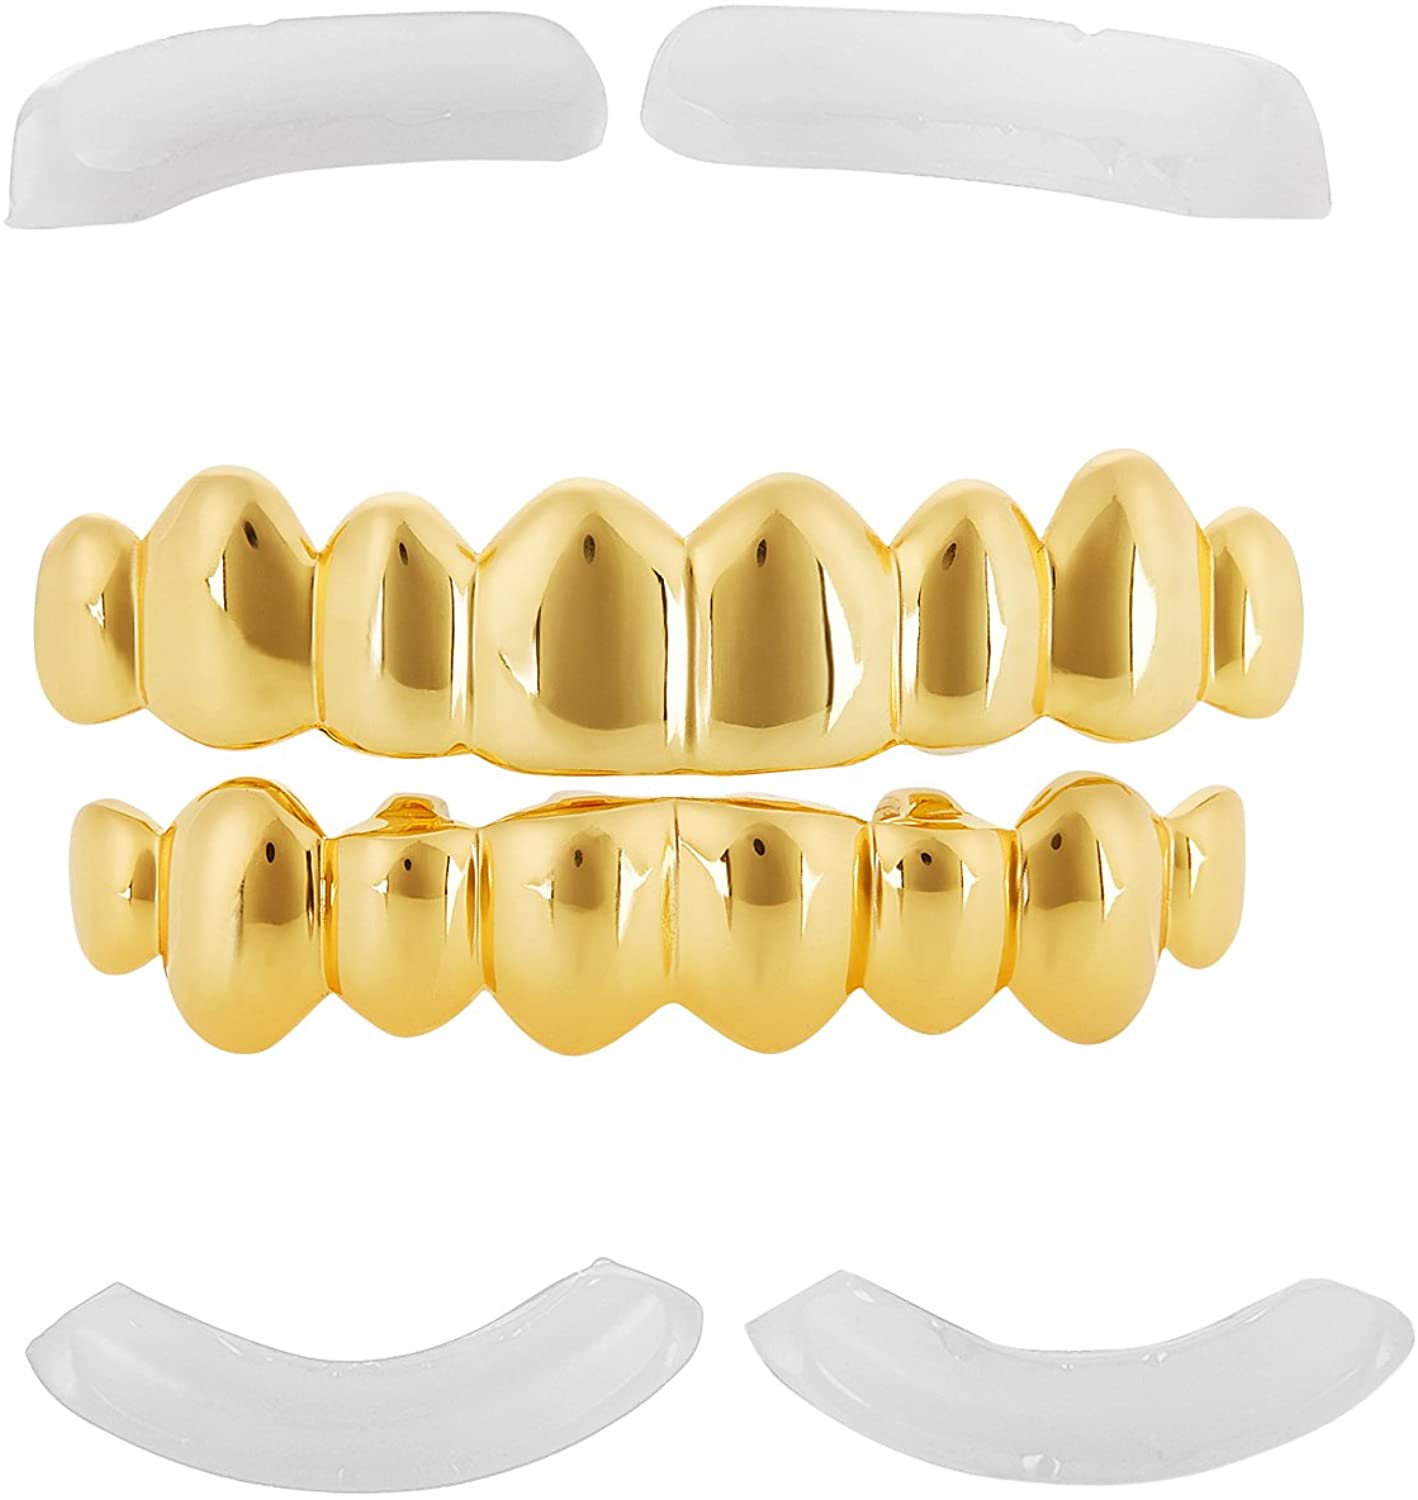 Polished 0.16 mils (4 microns) 14k Yellow Gold Plated Silver Top & Bottom Grillz Set + Jewelry Cloth & Pouch